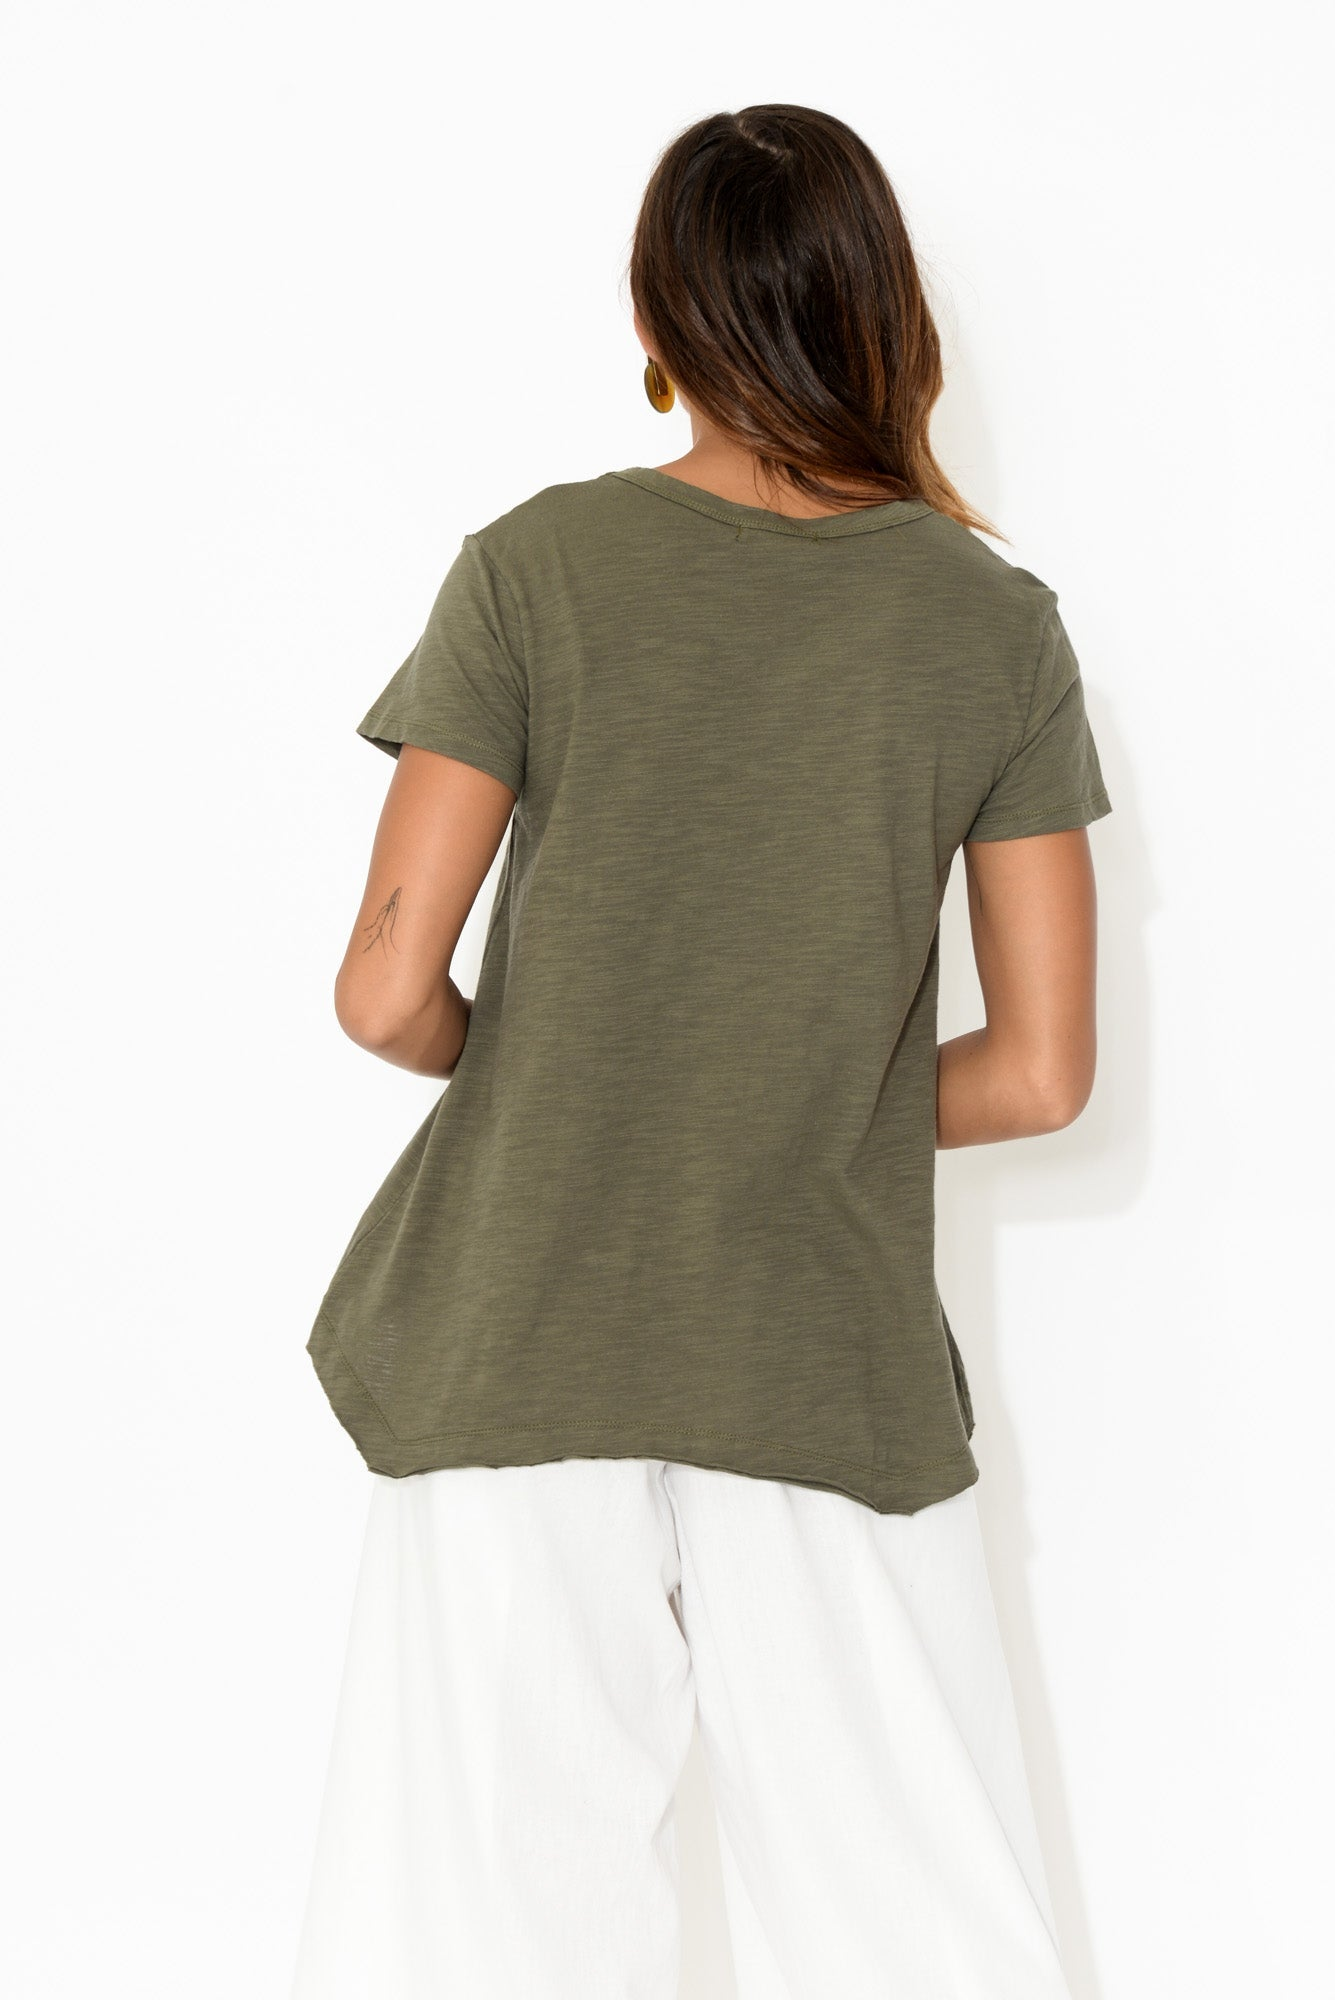 Thornton Khaki Cotton Tee